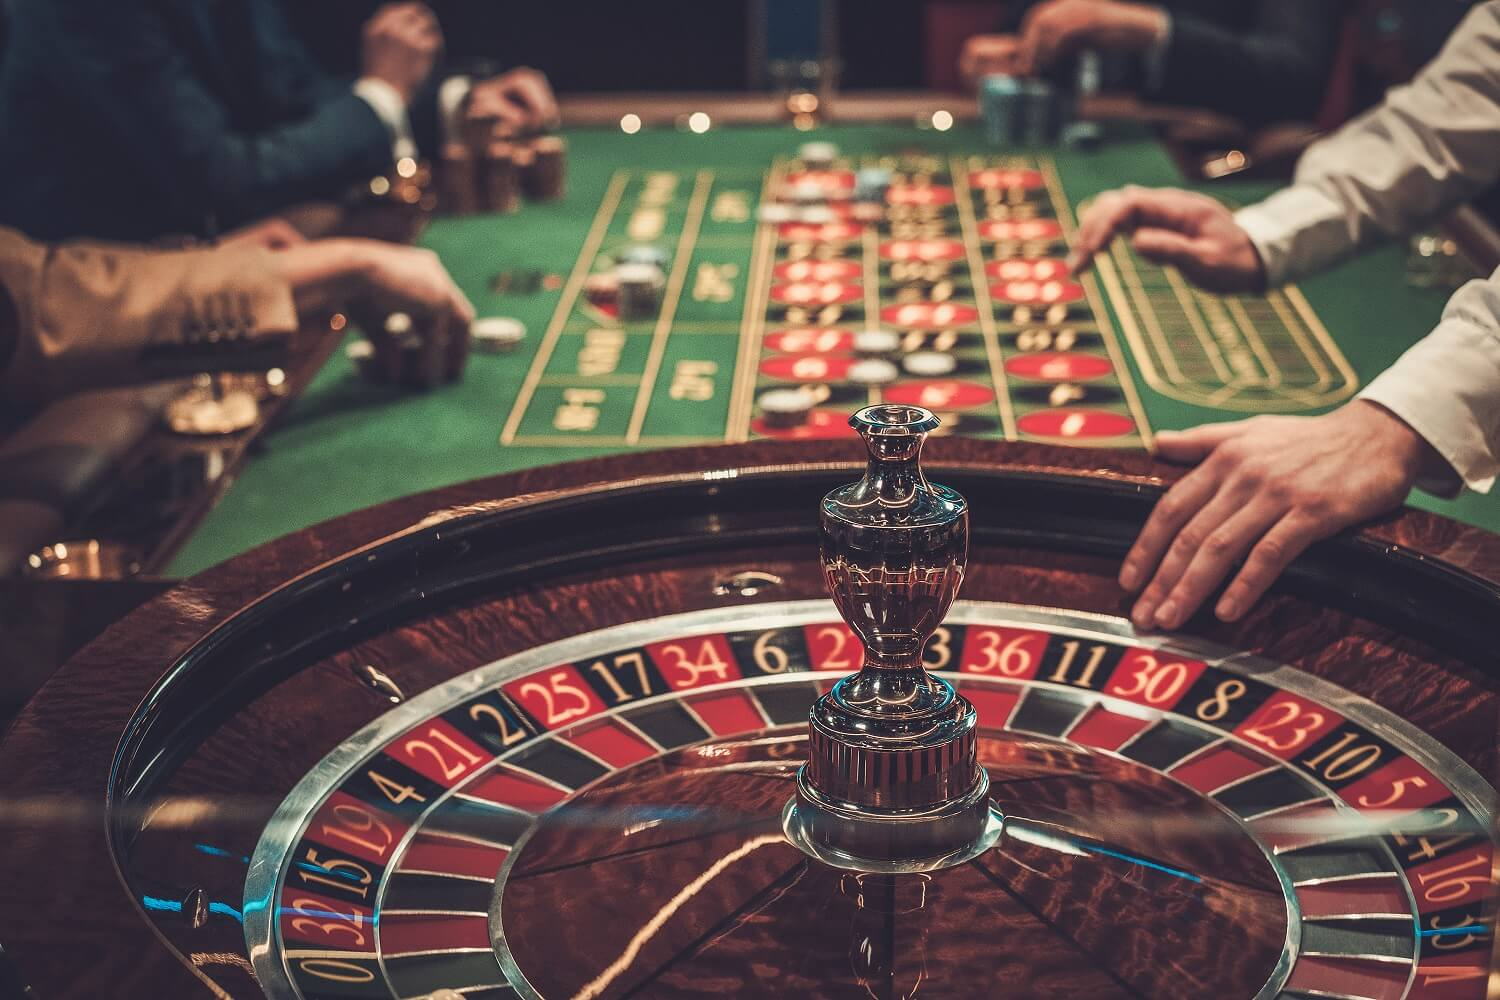 DFNN Reportedly Obtains First Philippine Online Gambling Licence